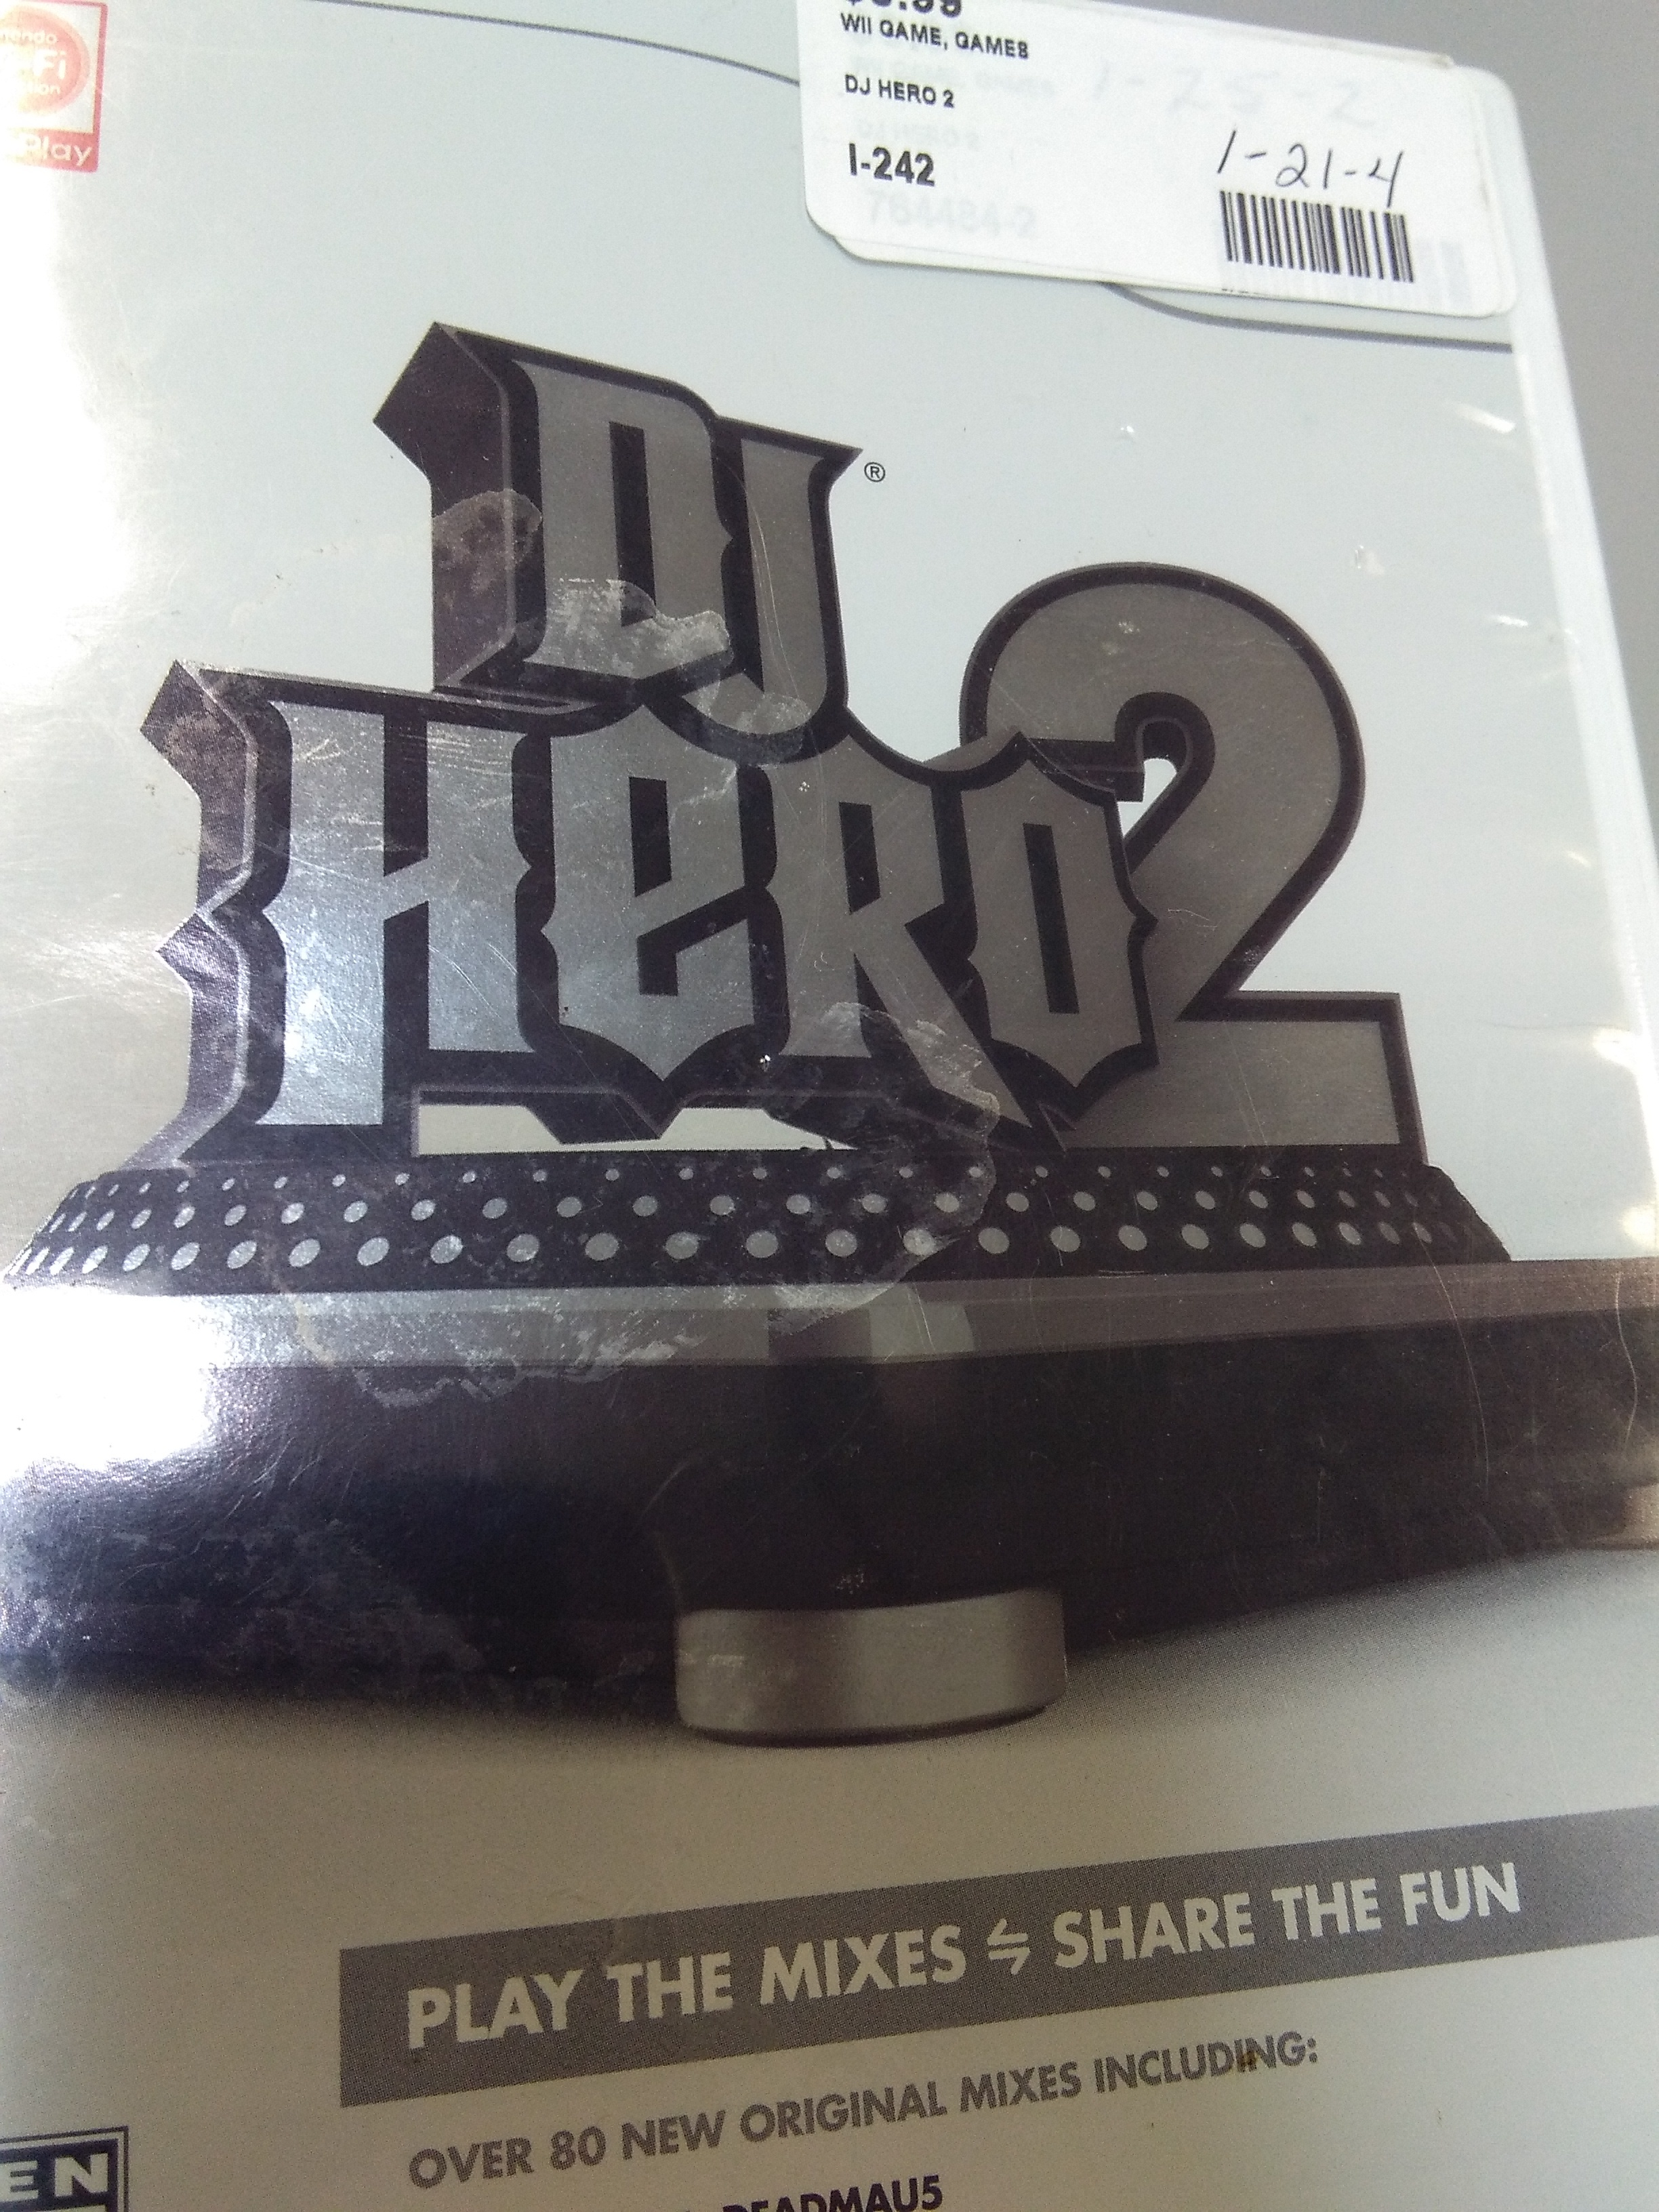 DJ HERO 2 WII GAME